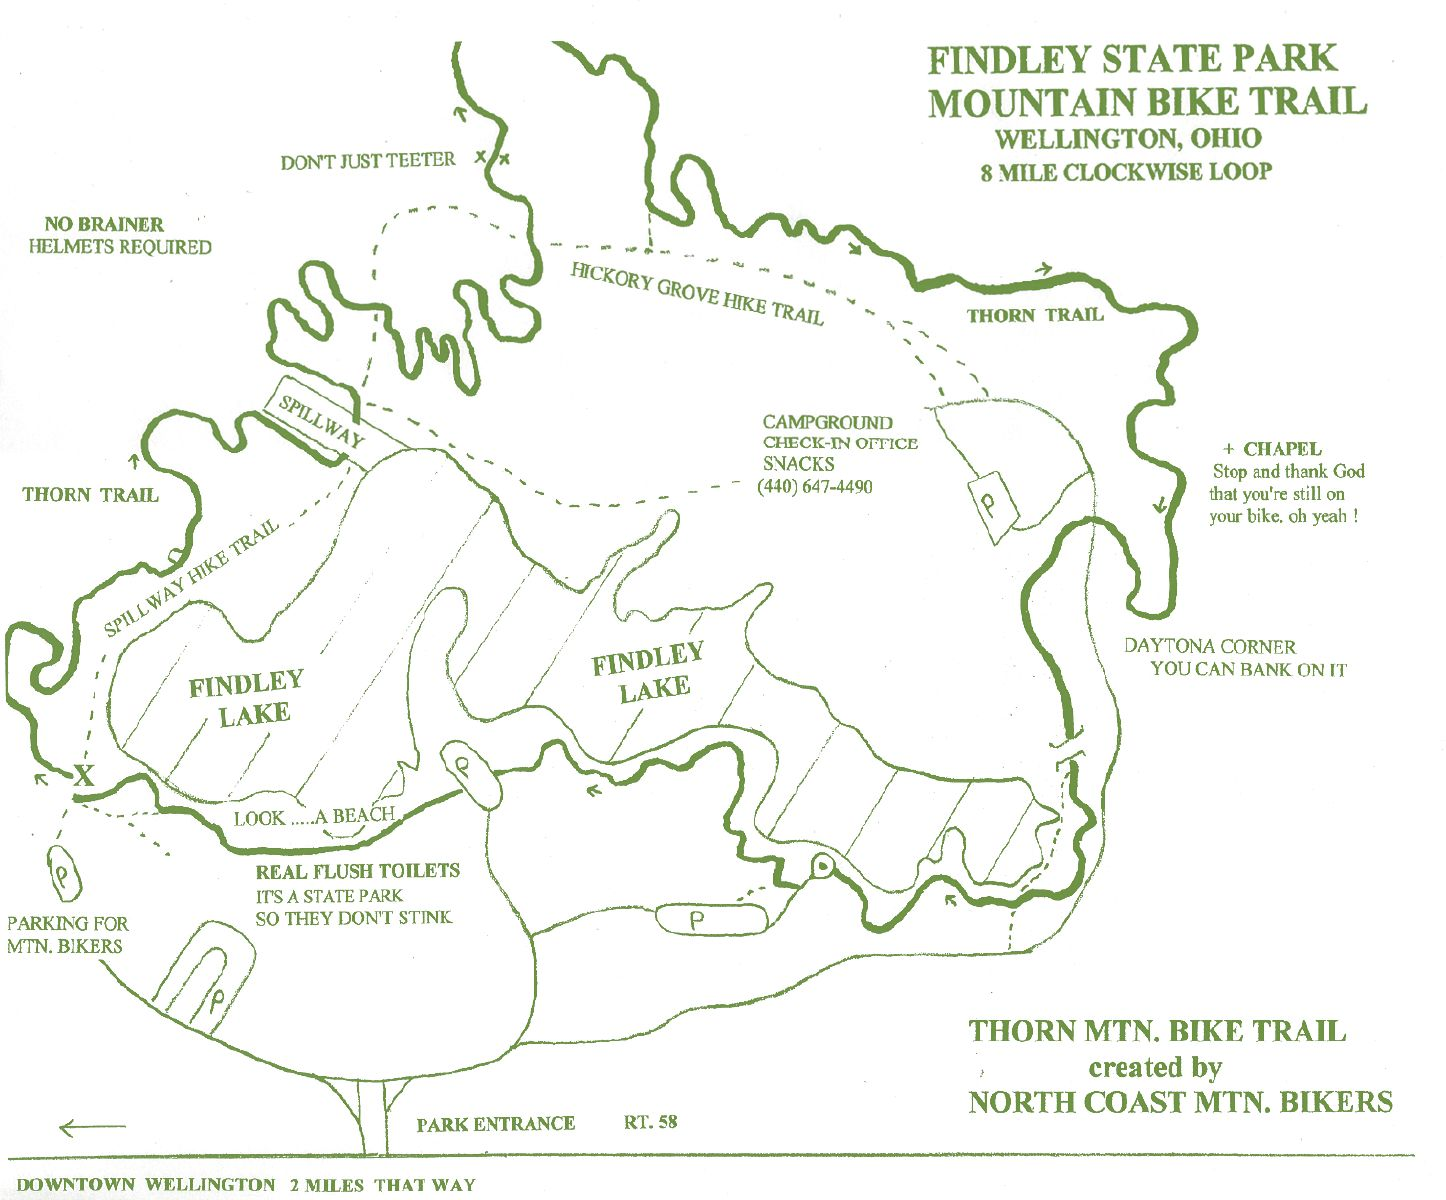 State Parks Ohio Map.Findley State Park Thorn Mountain Bike Trail Map By Visit Lorain